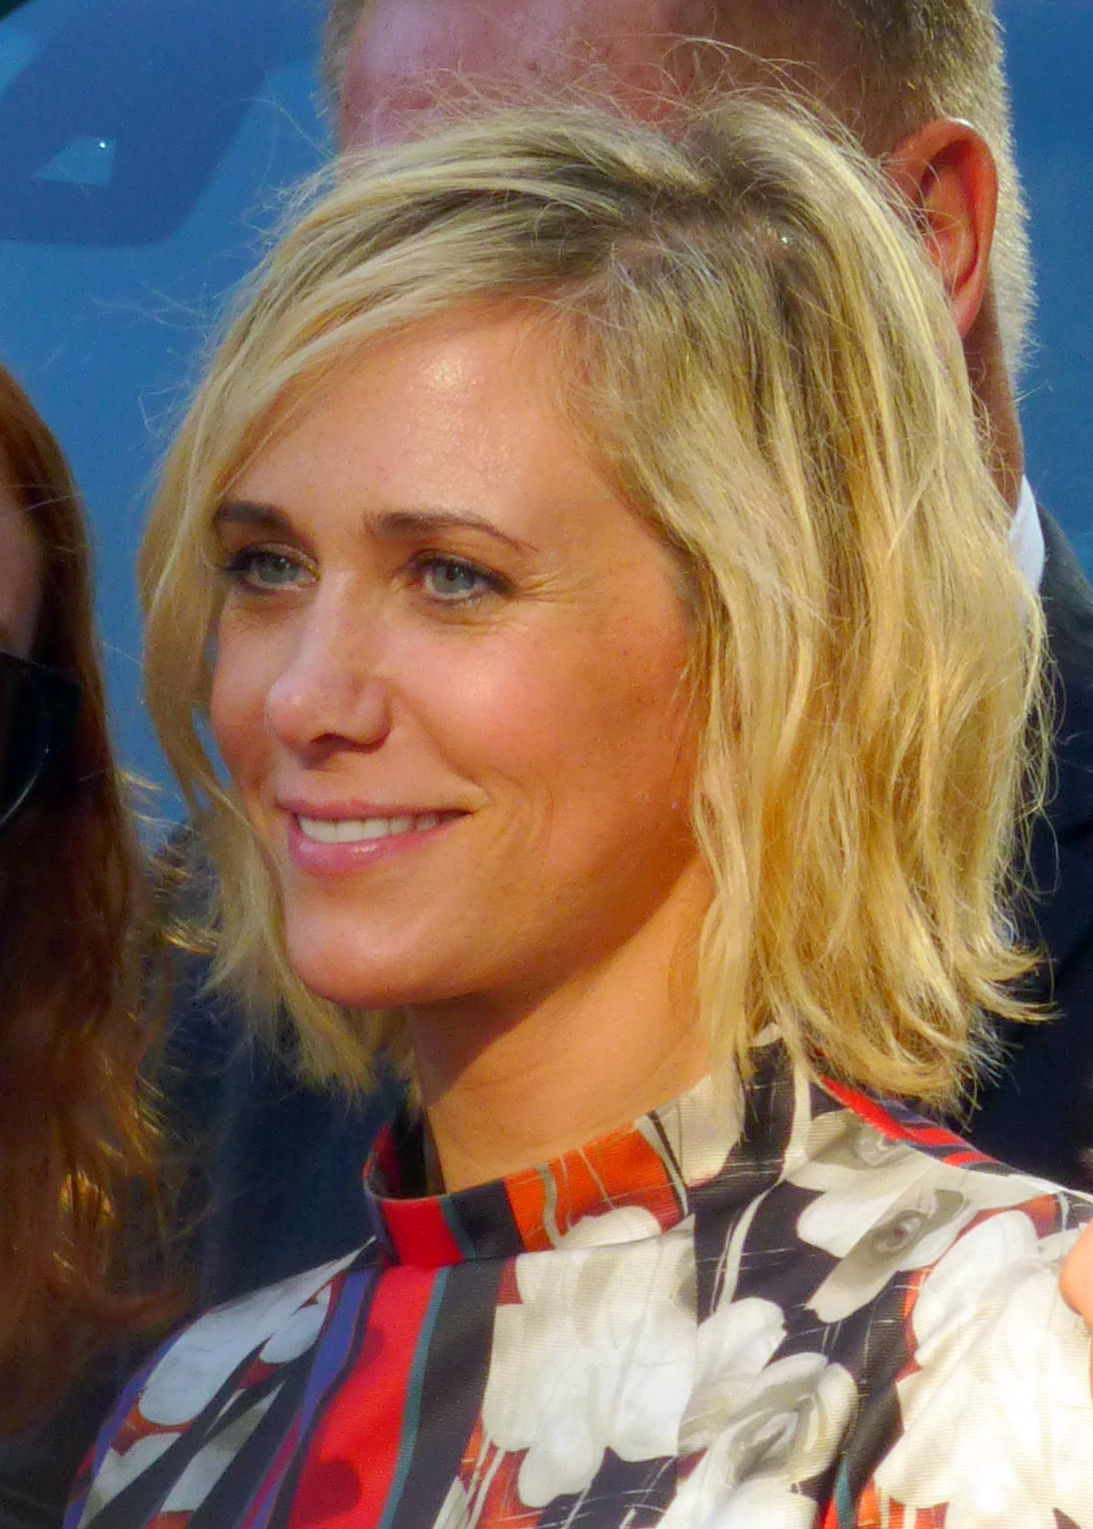 Photo of Kristen Wiig: American actress and comedian